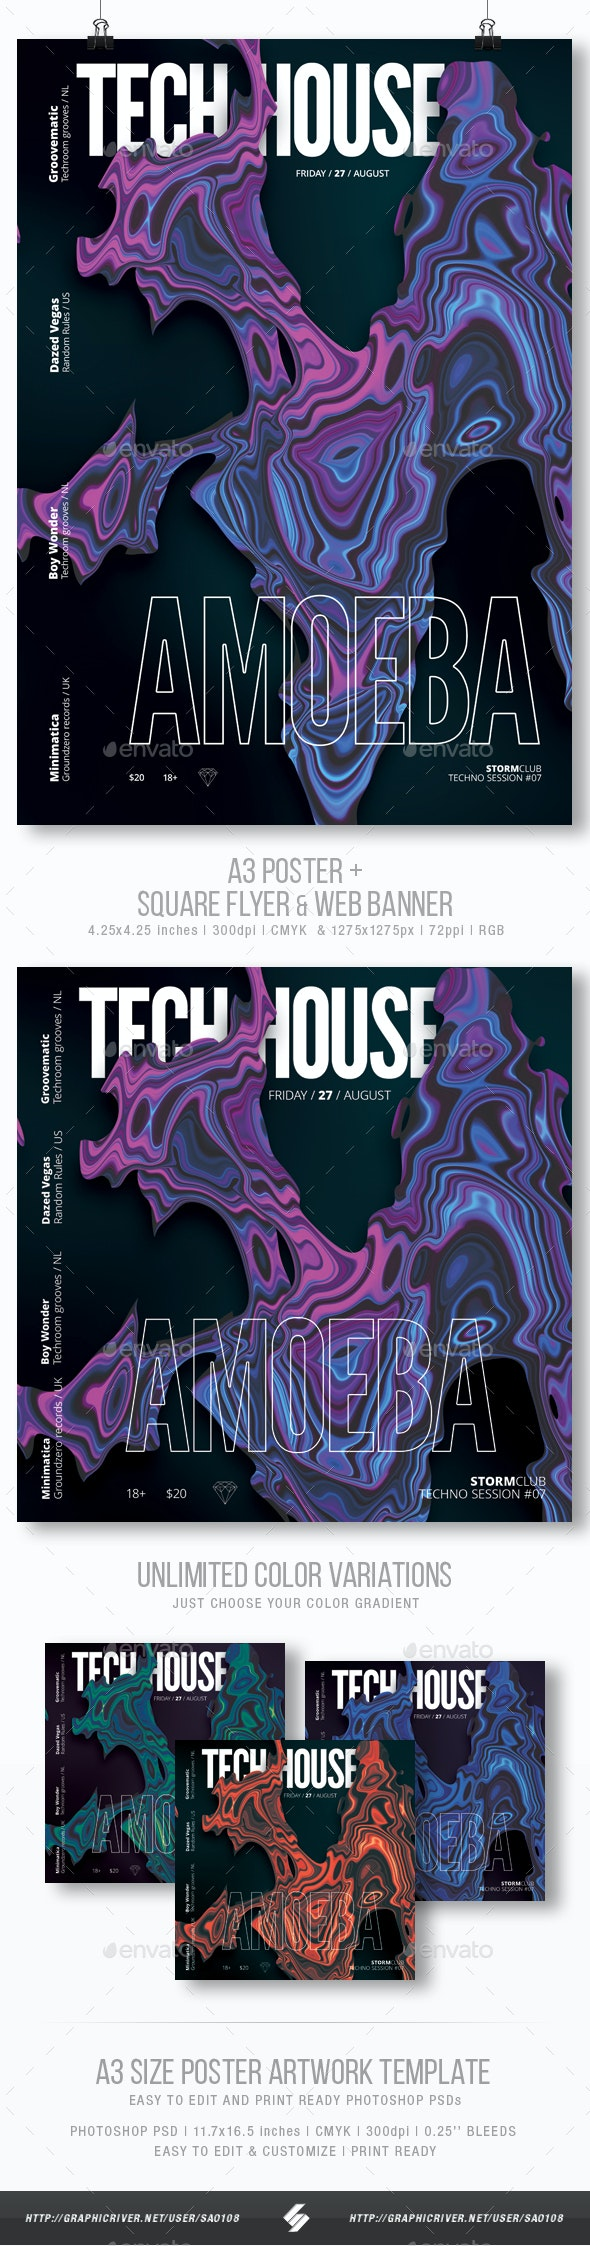 Tech-house Amoeba - Club Party Flyer / Poster Template A3 - Clubs & Parties Events